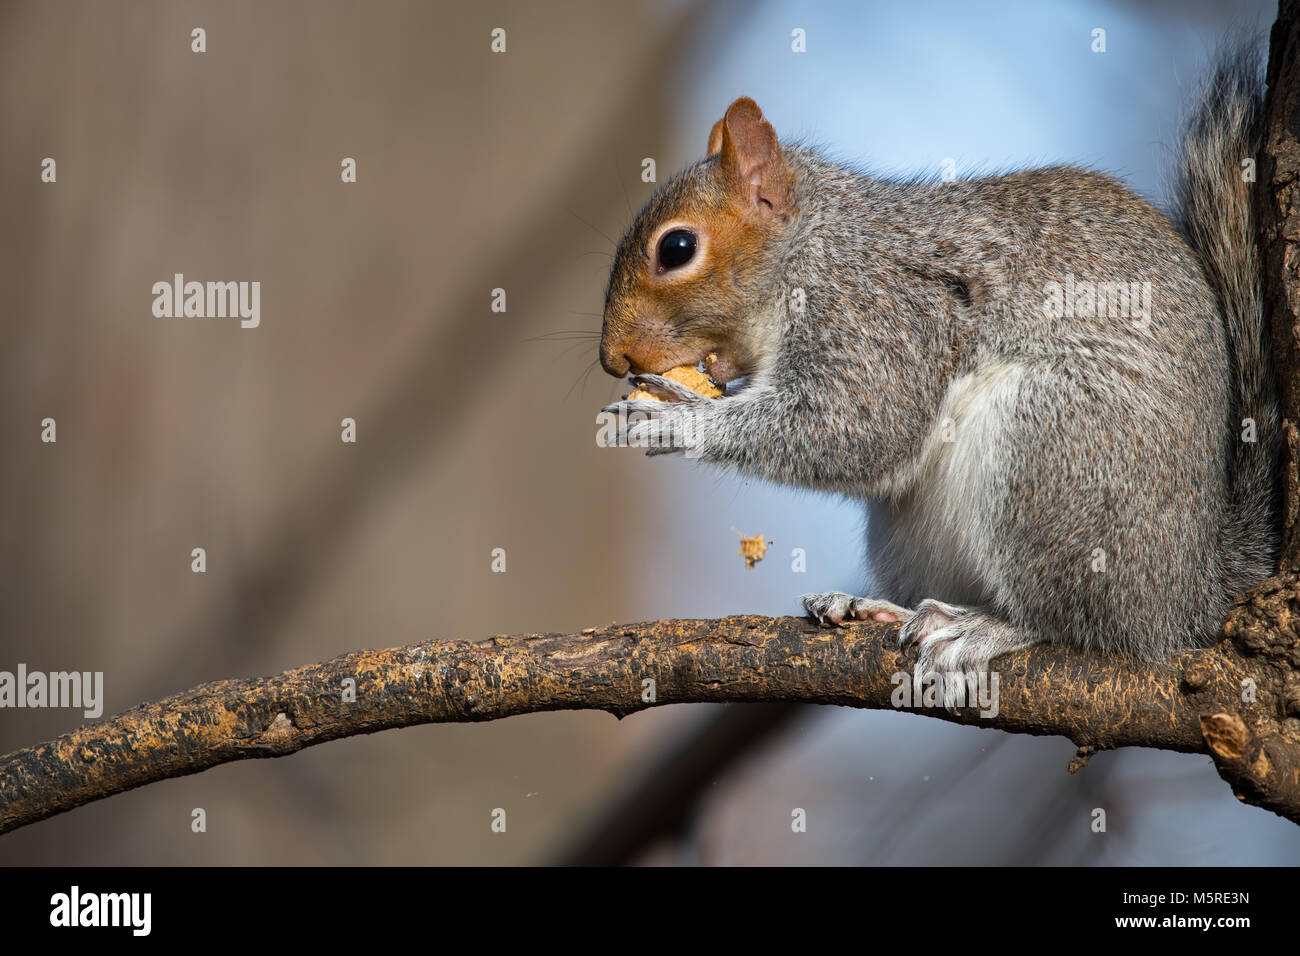 Eastern Grey Squirrel Eating Peanut - Stock Image